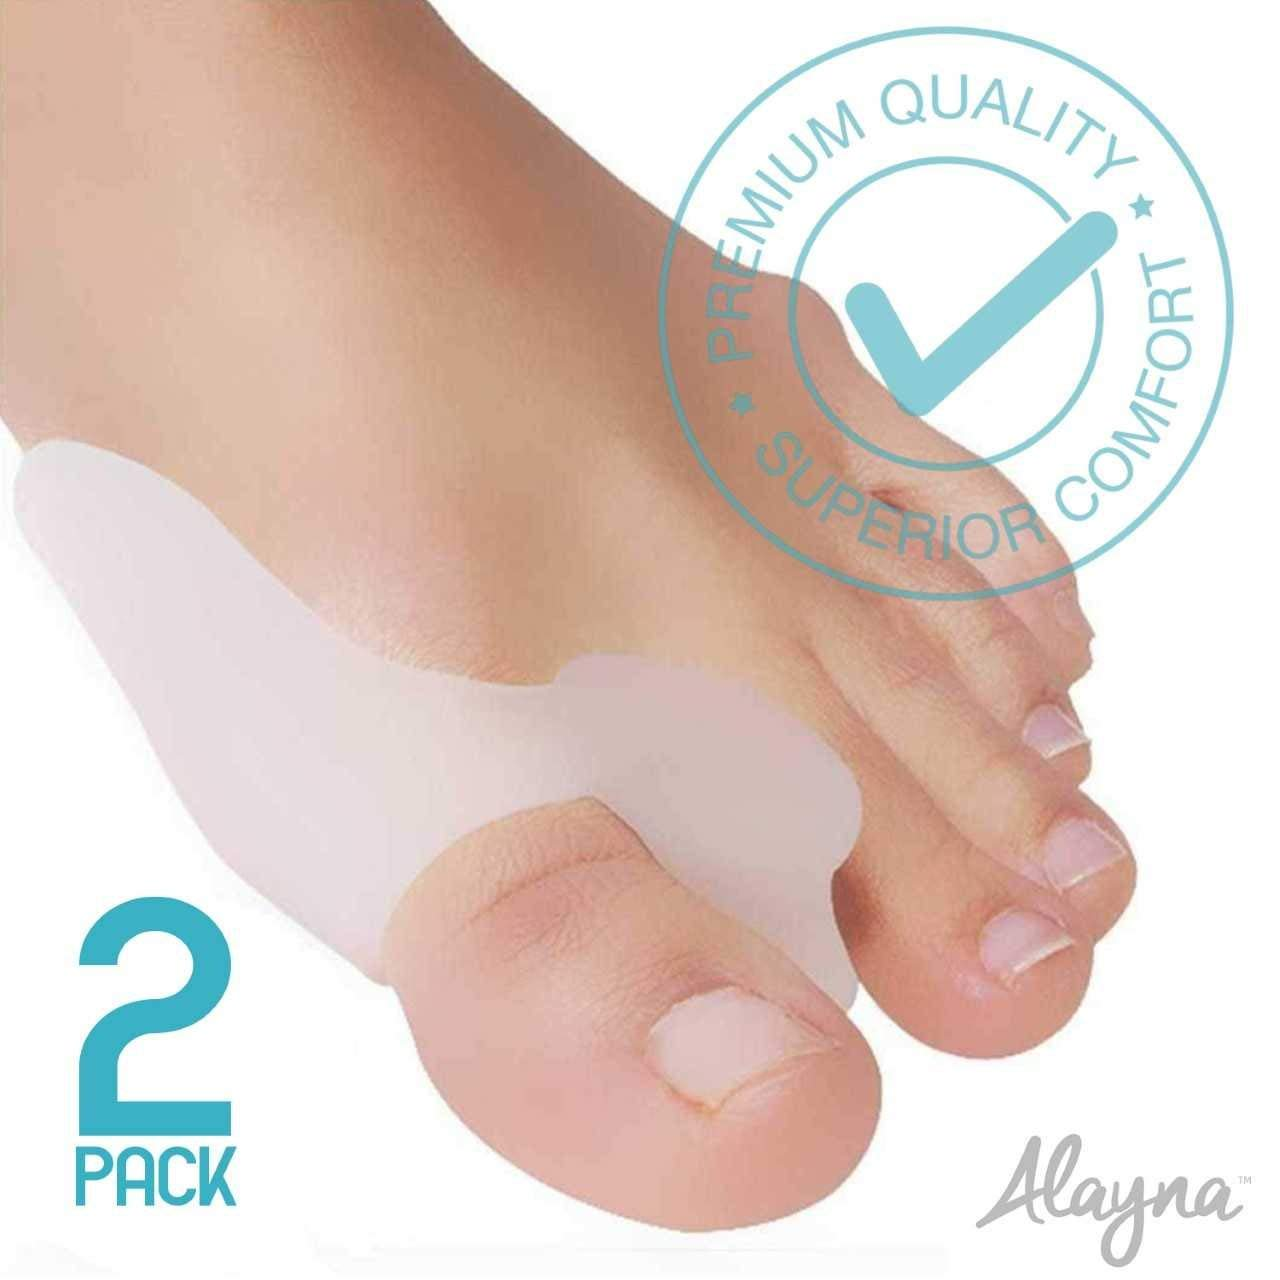 Bunion Corrector and the Bunion Relief Gel Toe separator